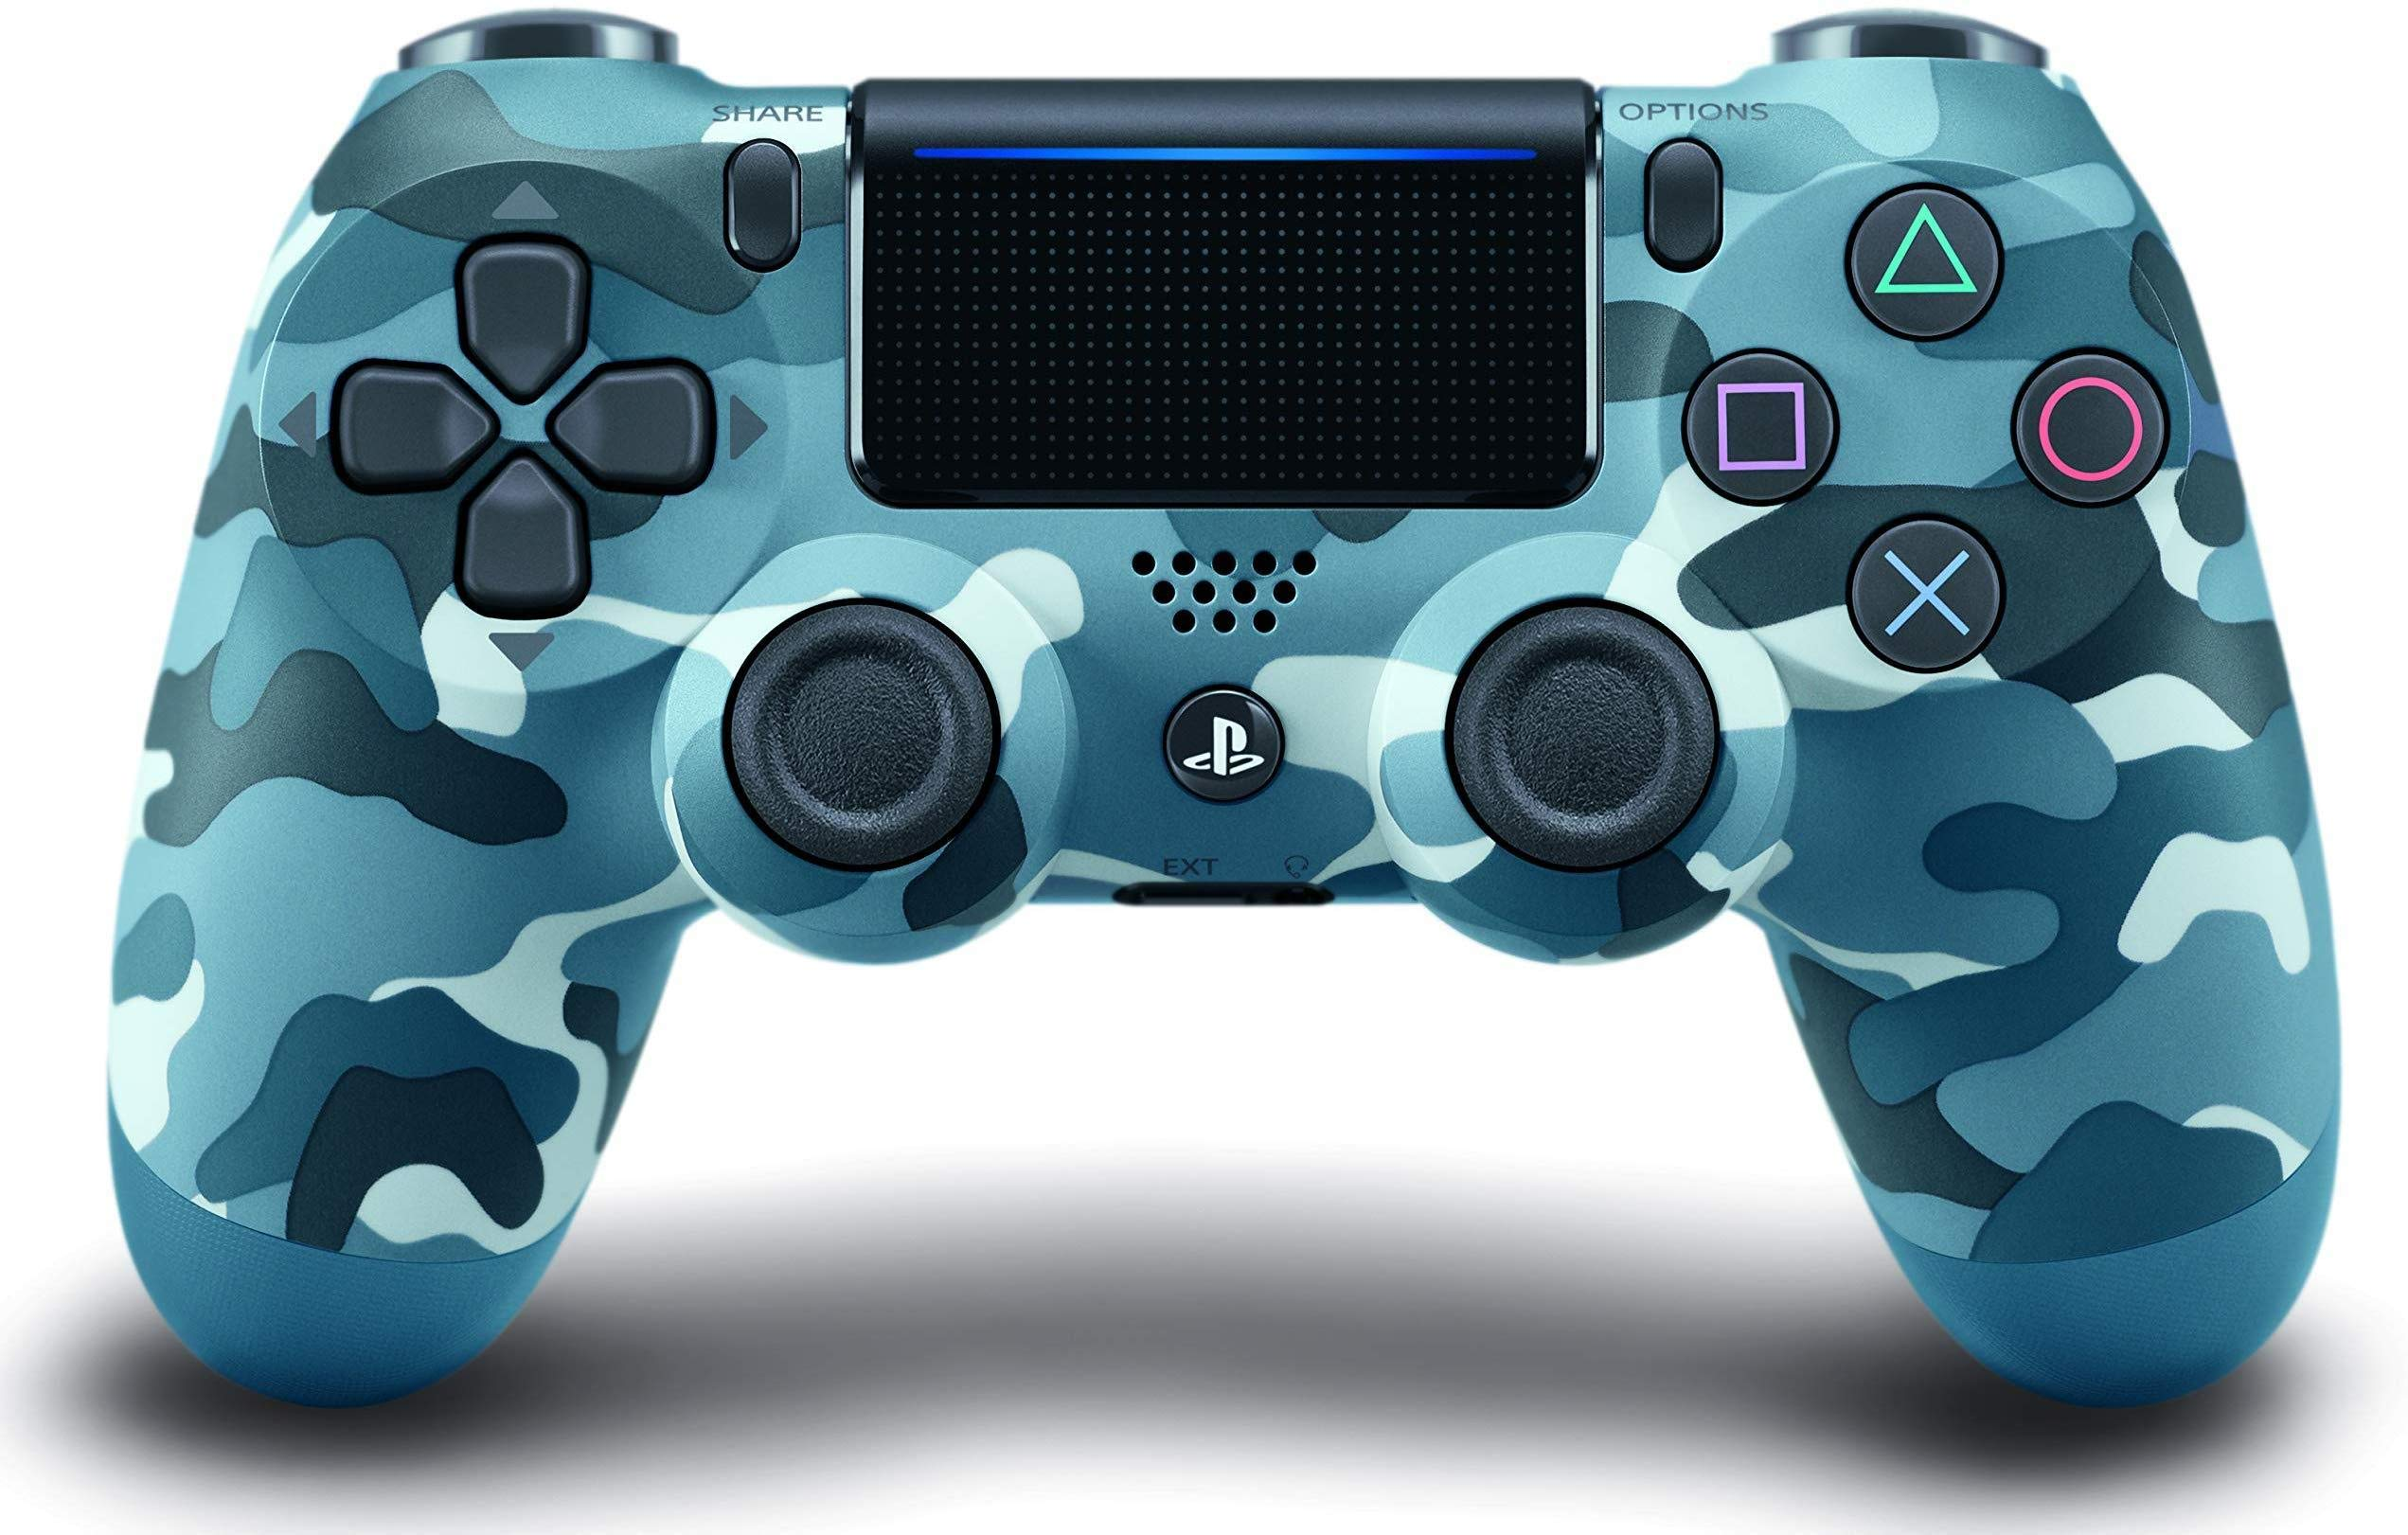 Dualshock 4 Wireless PS4 Controller: Blue Camo for Sony Playstation 4